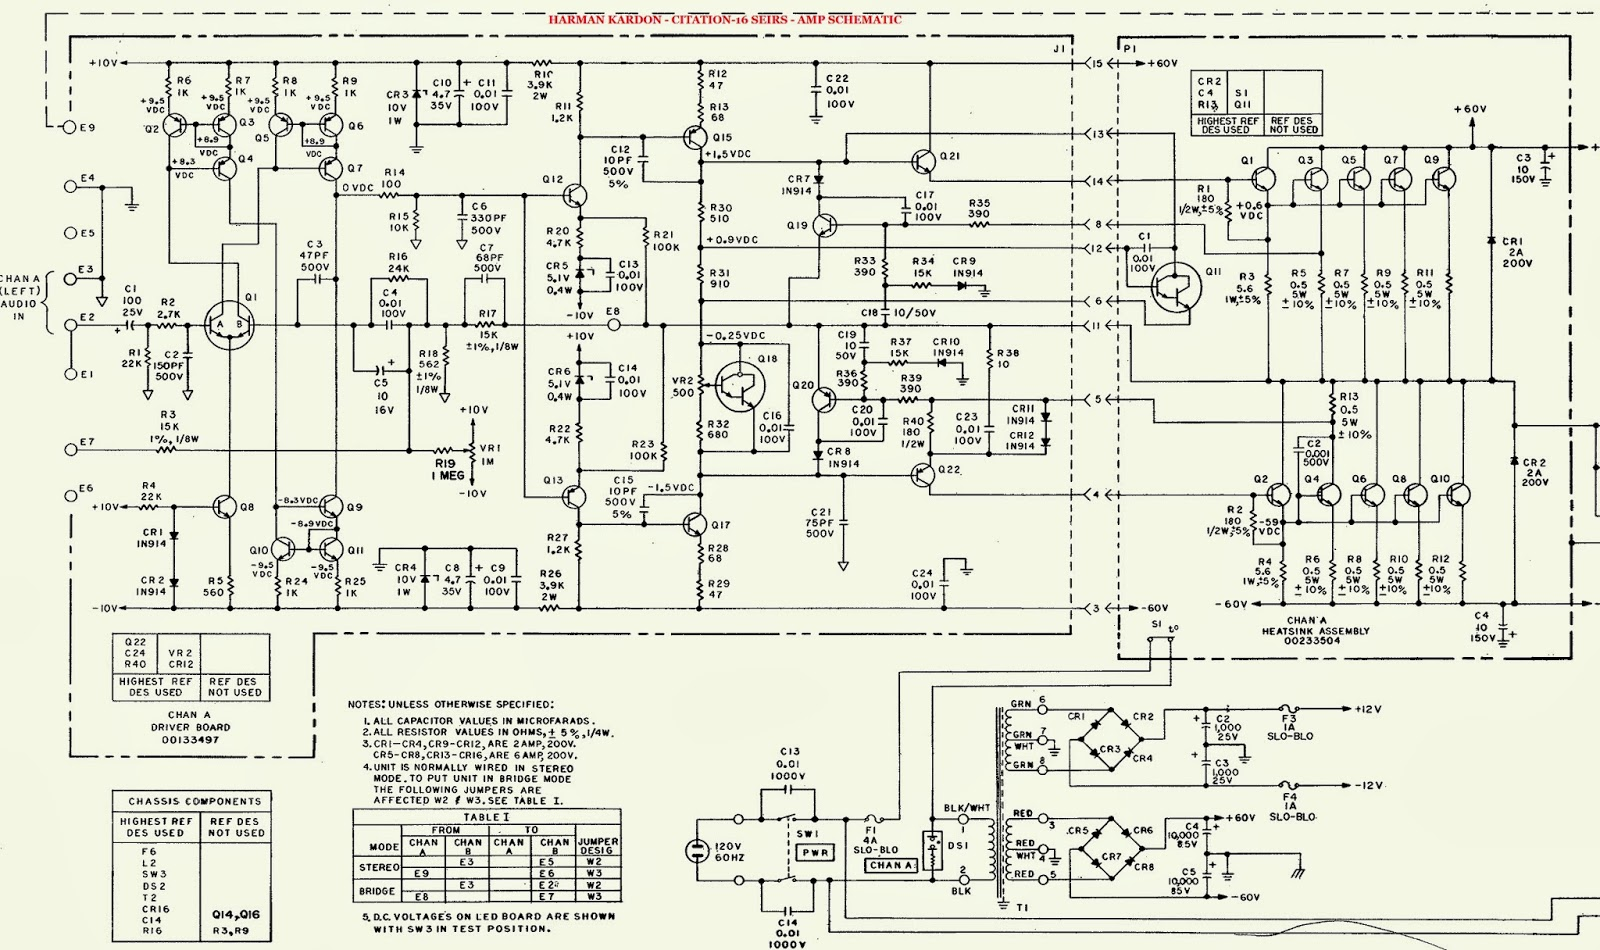 harman kardon citation 16 series stereo amp schematic in order to operate in the bridge mode first perform the internal modification once this is accomplished speaker must now be connected between the left